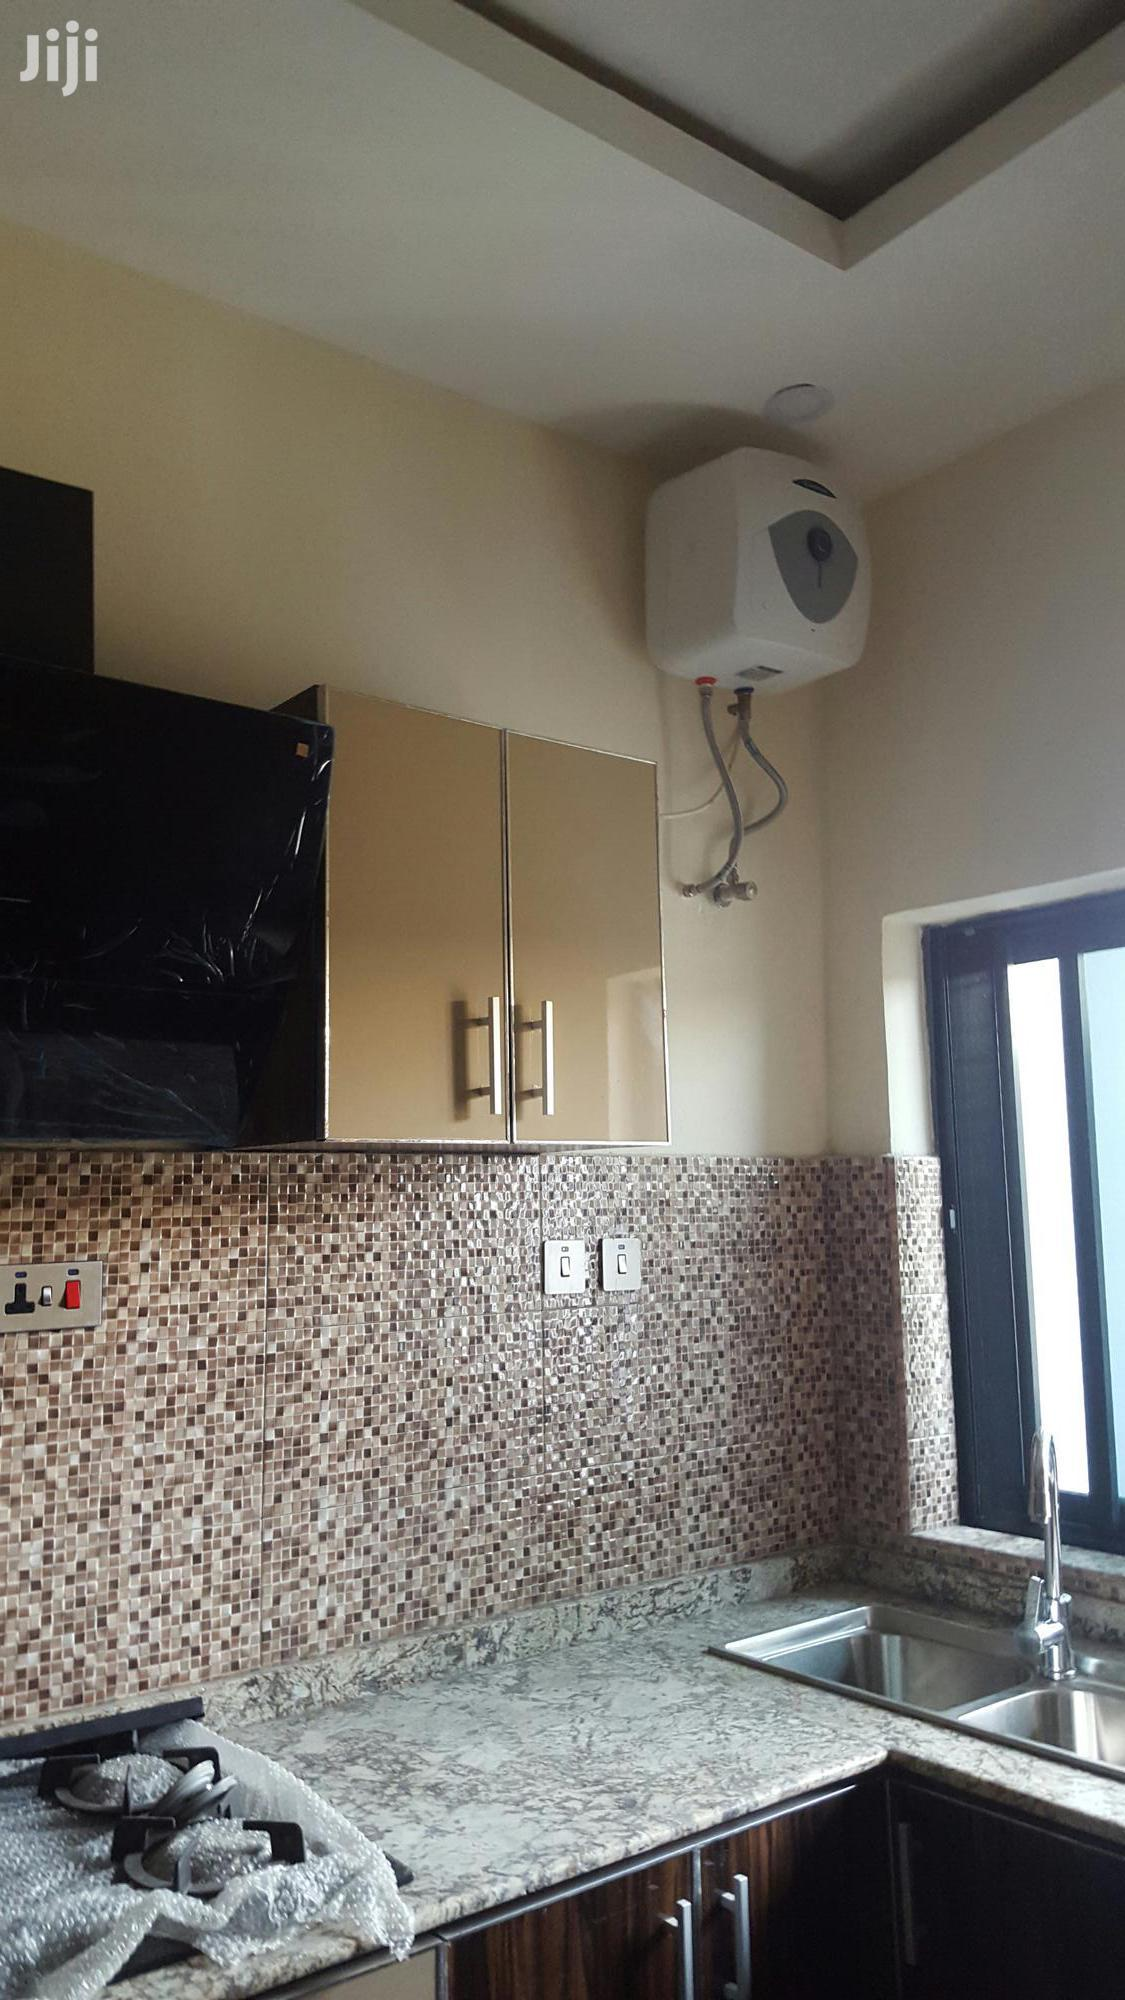 Clean 5 Bedroom Terrace Duplex With 1 Bq, Swimming Pool At Lekki For Sale | Houses & Apartments For Sale for sale in Lekki, Lagos State, Nigeria